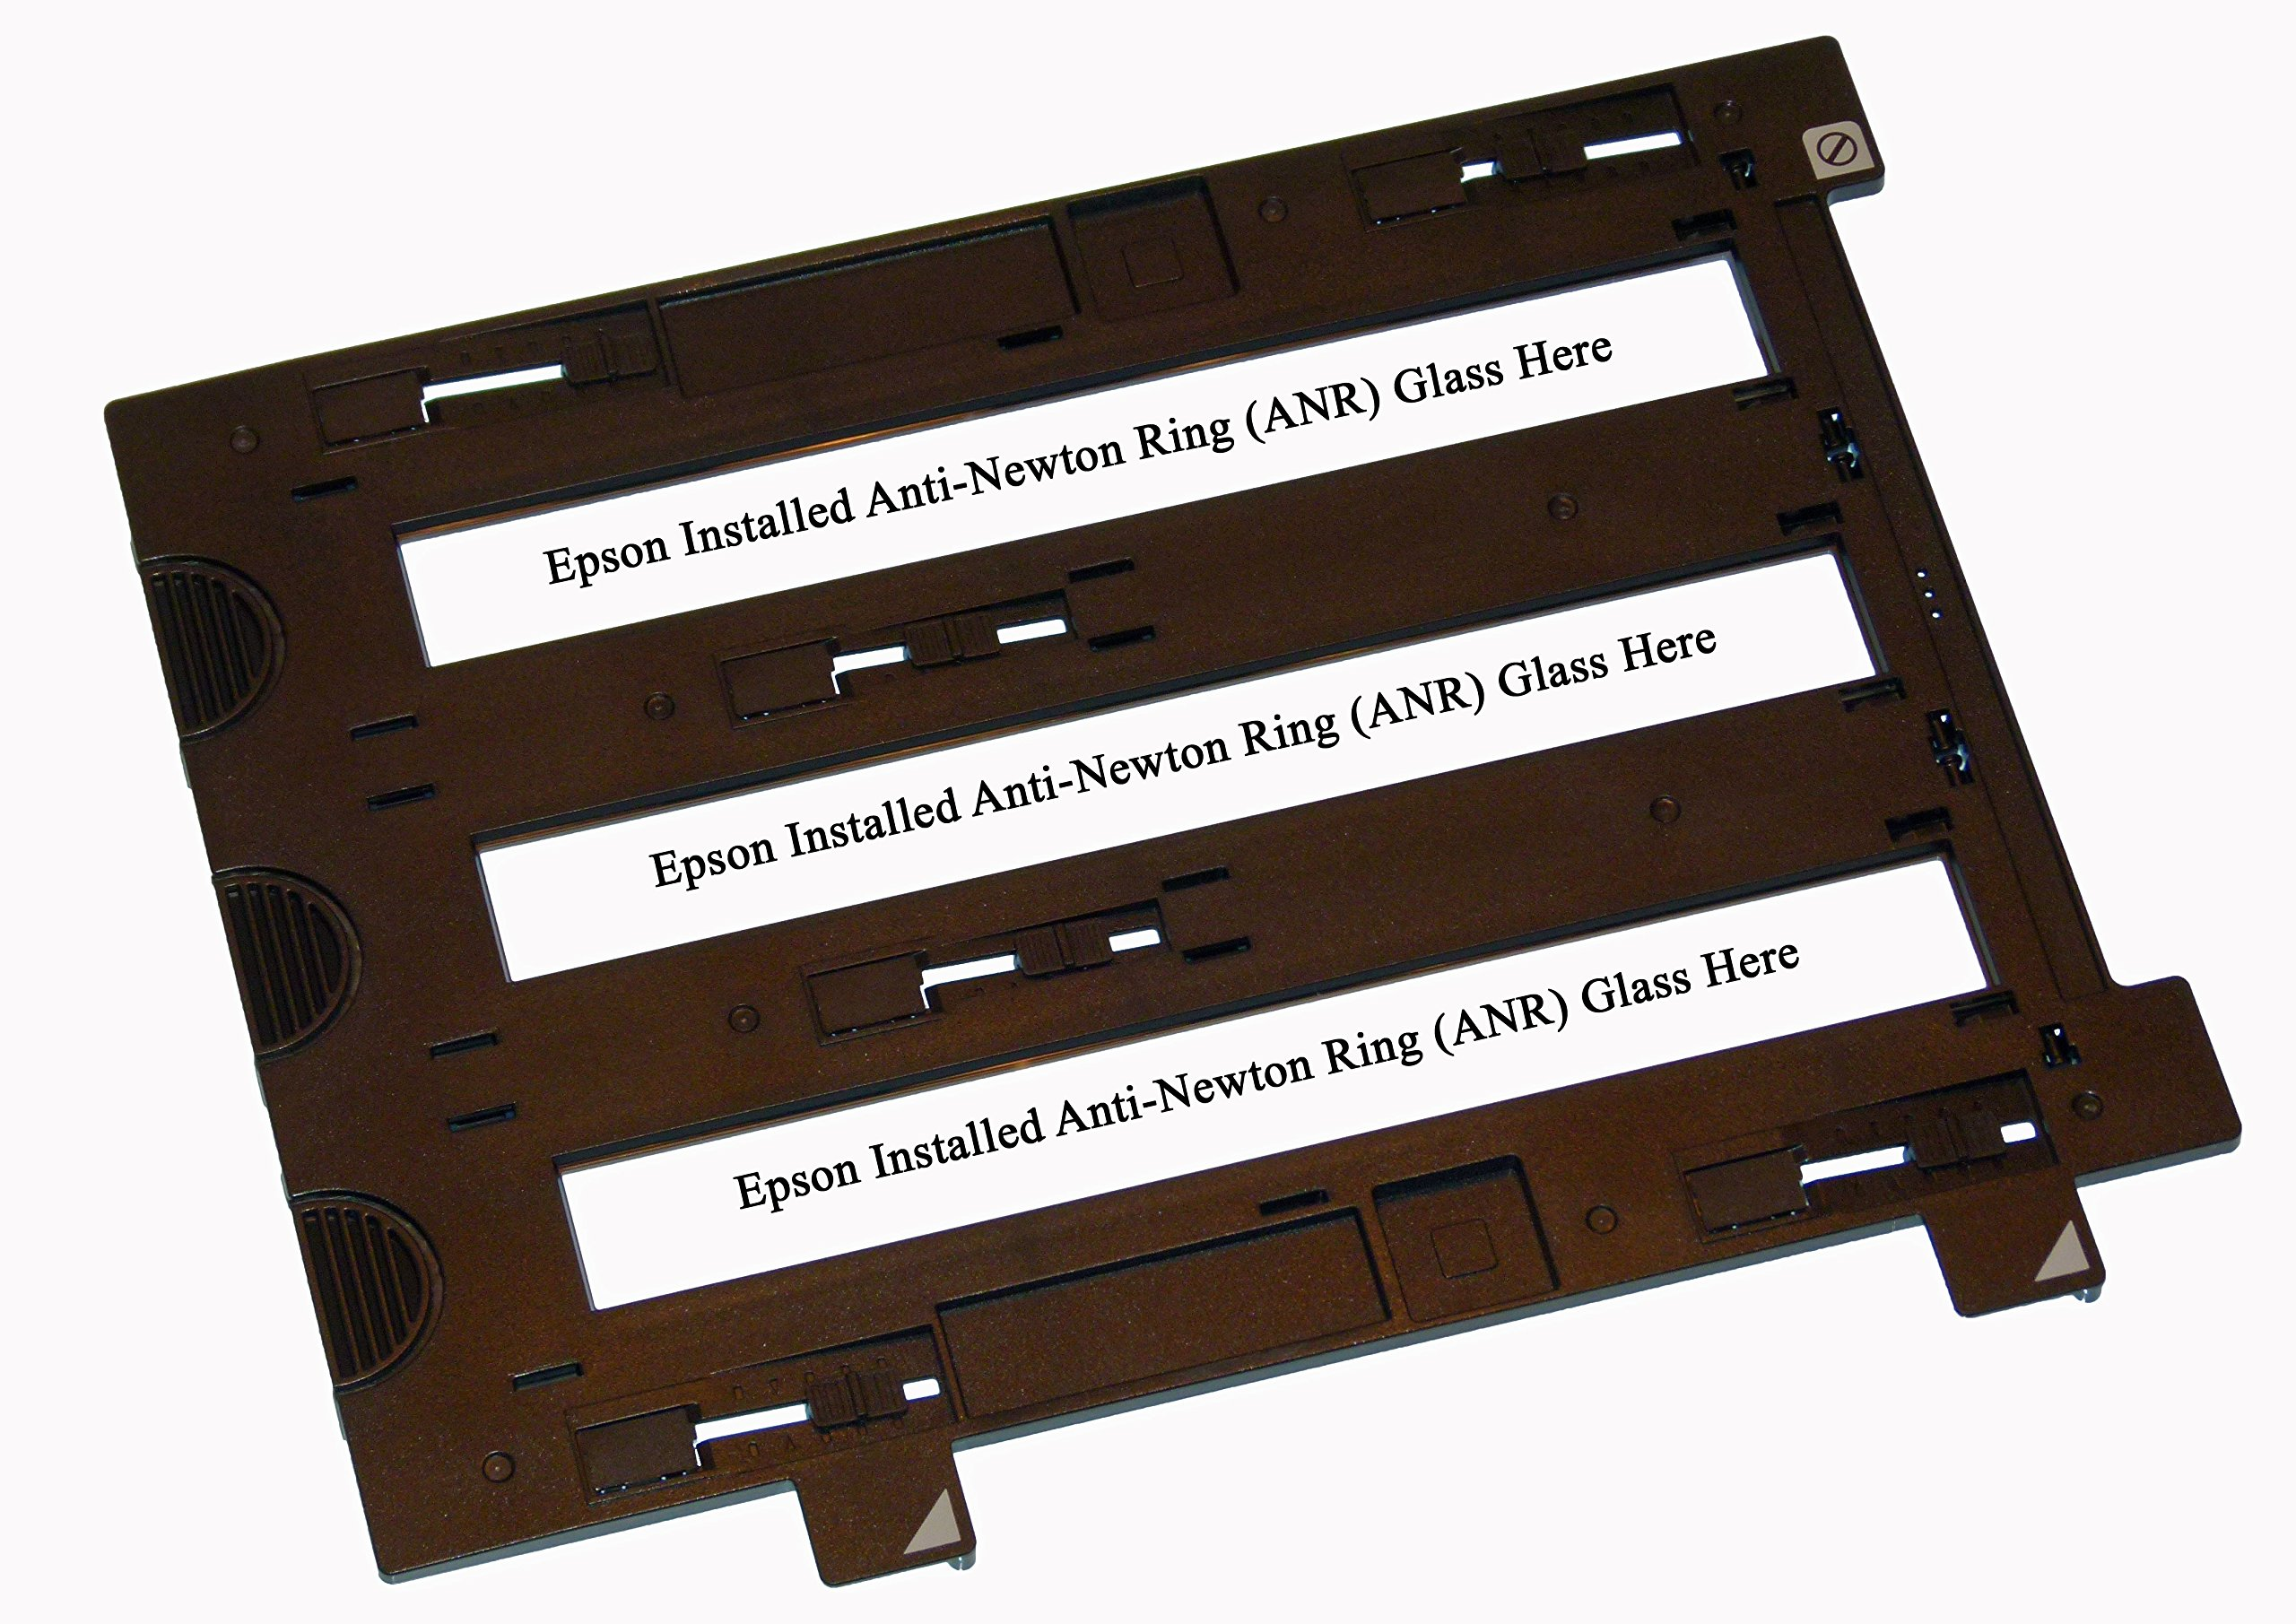 Epson Perfection V800 - 35mm Film Holder Or Film Guide Negative Or Positive by Epson (Image #1)